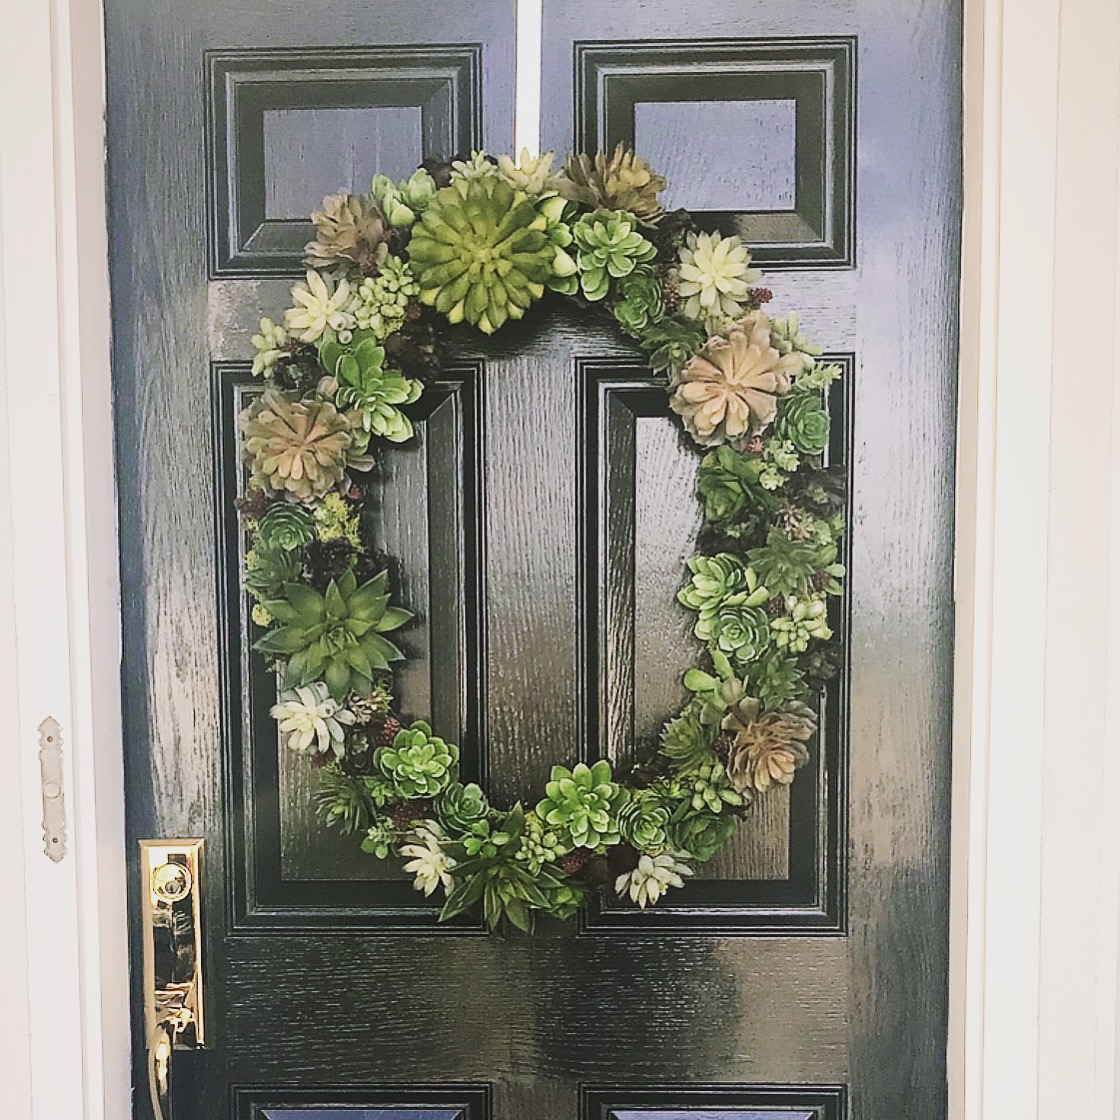 Decorate Your Door - Whether or not you choose to put on a fresh coat of paint, accessorizing your door will personalize your home. Building a wreath, or hanging a cute seasonal Easter egg is a simple way to accessorize.